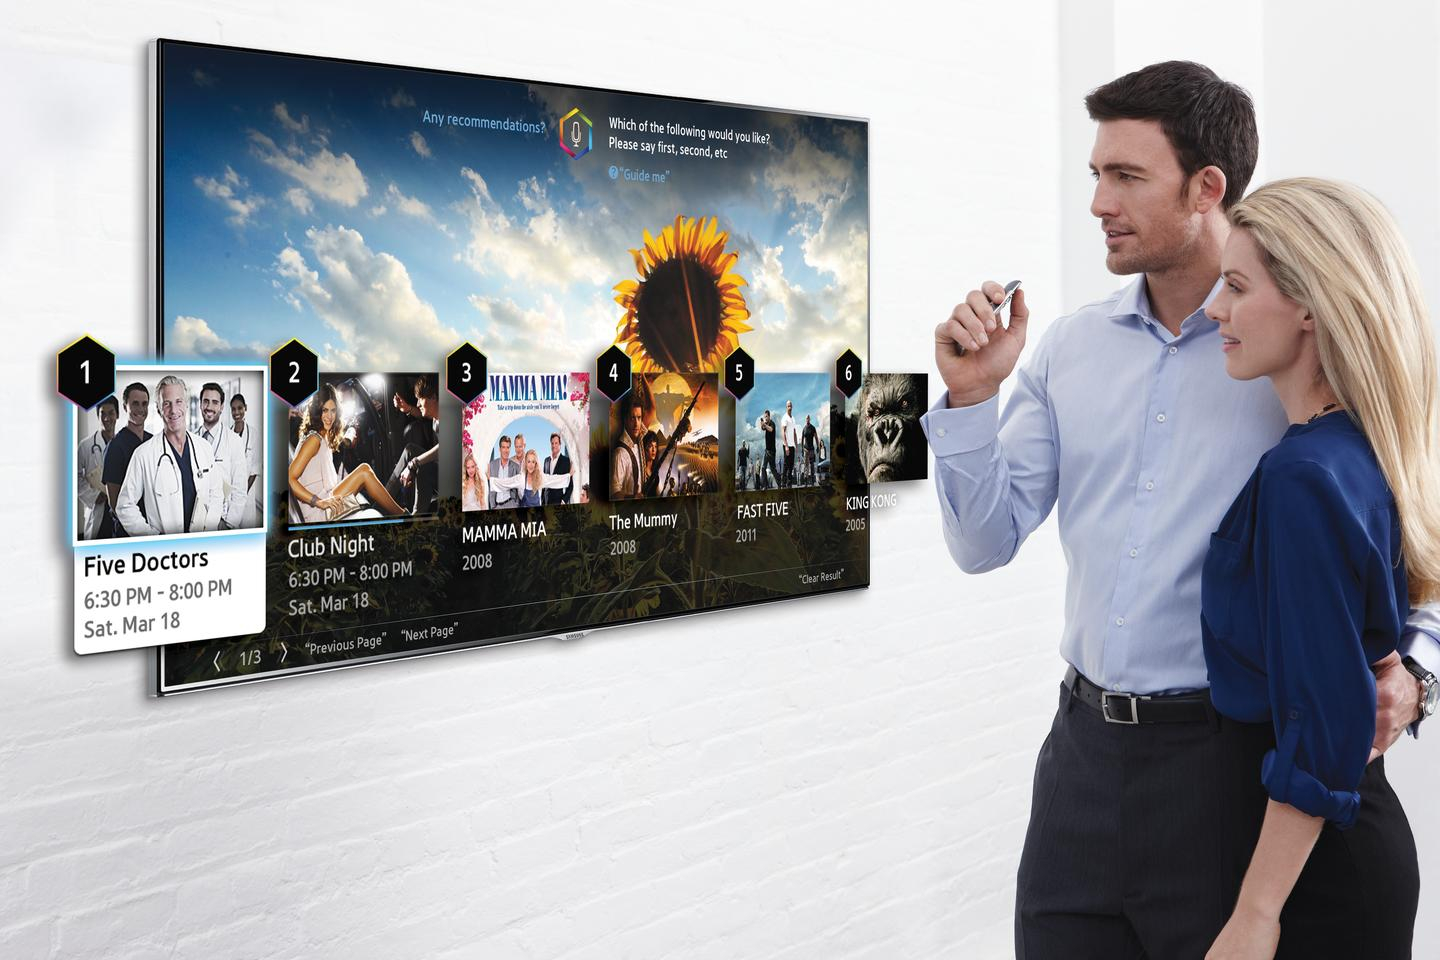 """Samsung's 2014 Smart TVs will debut at CES 2014 with improved voice commands and """"finger gesture"""" controls"""